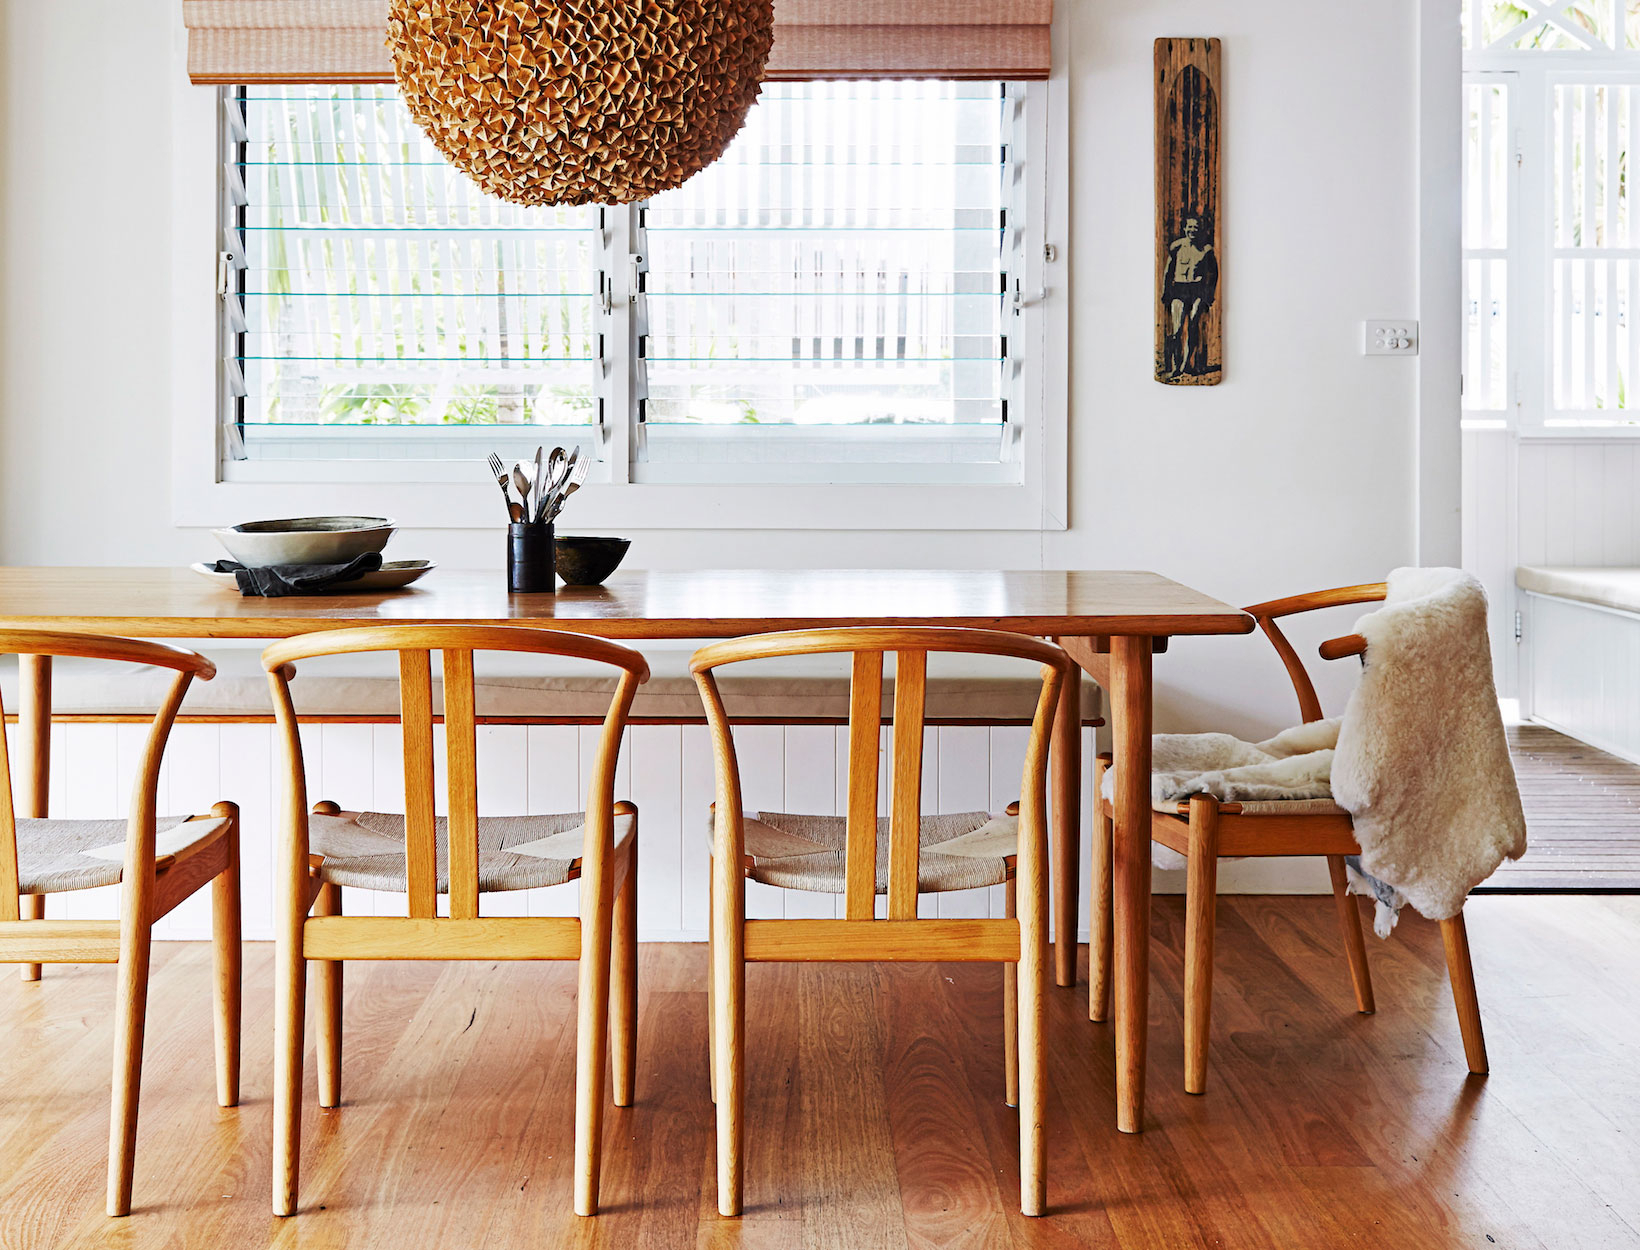 Solid Wood Circular Dining Tables White Regarding Popular 8 Design Professionals On Their Favorite Dining Tables (View 16 of 30)